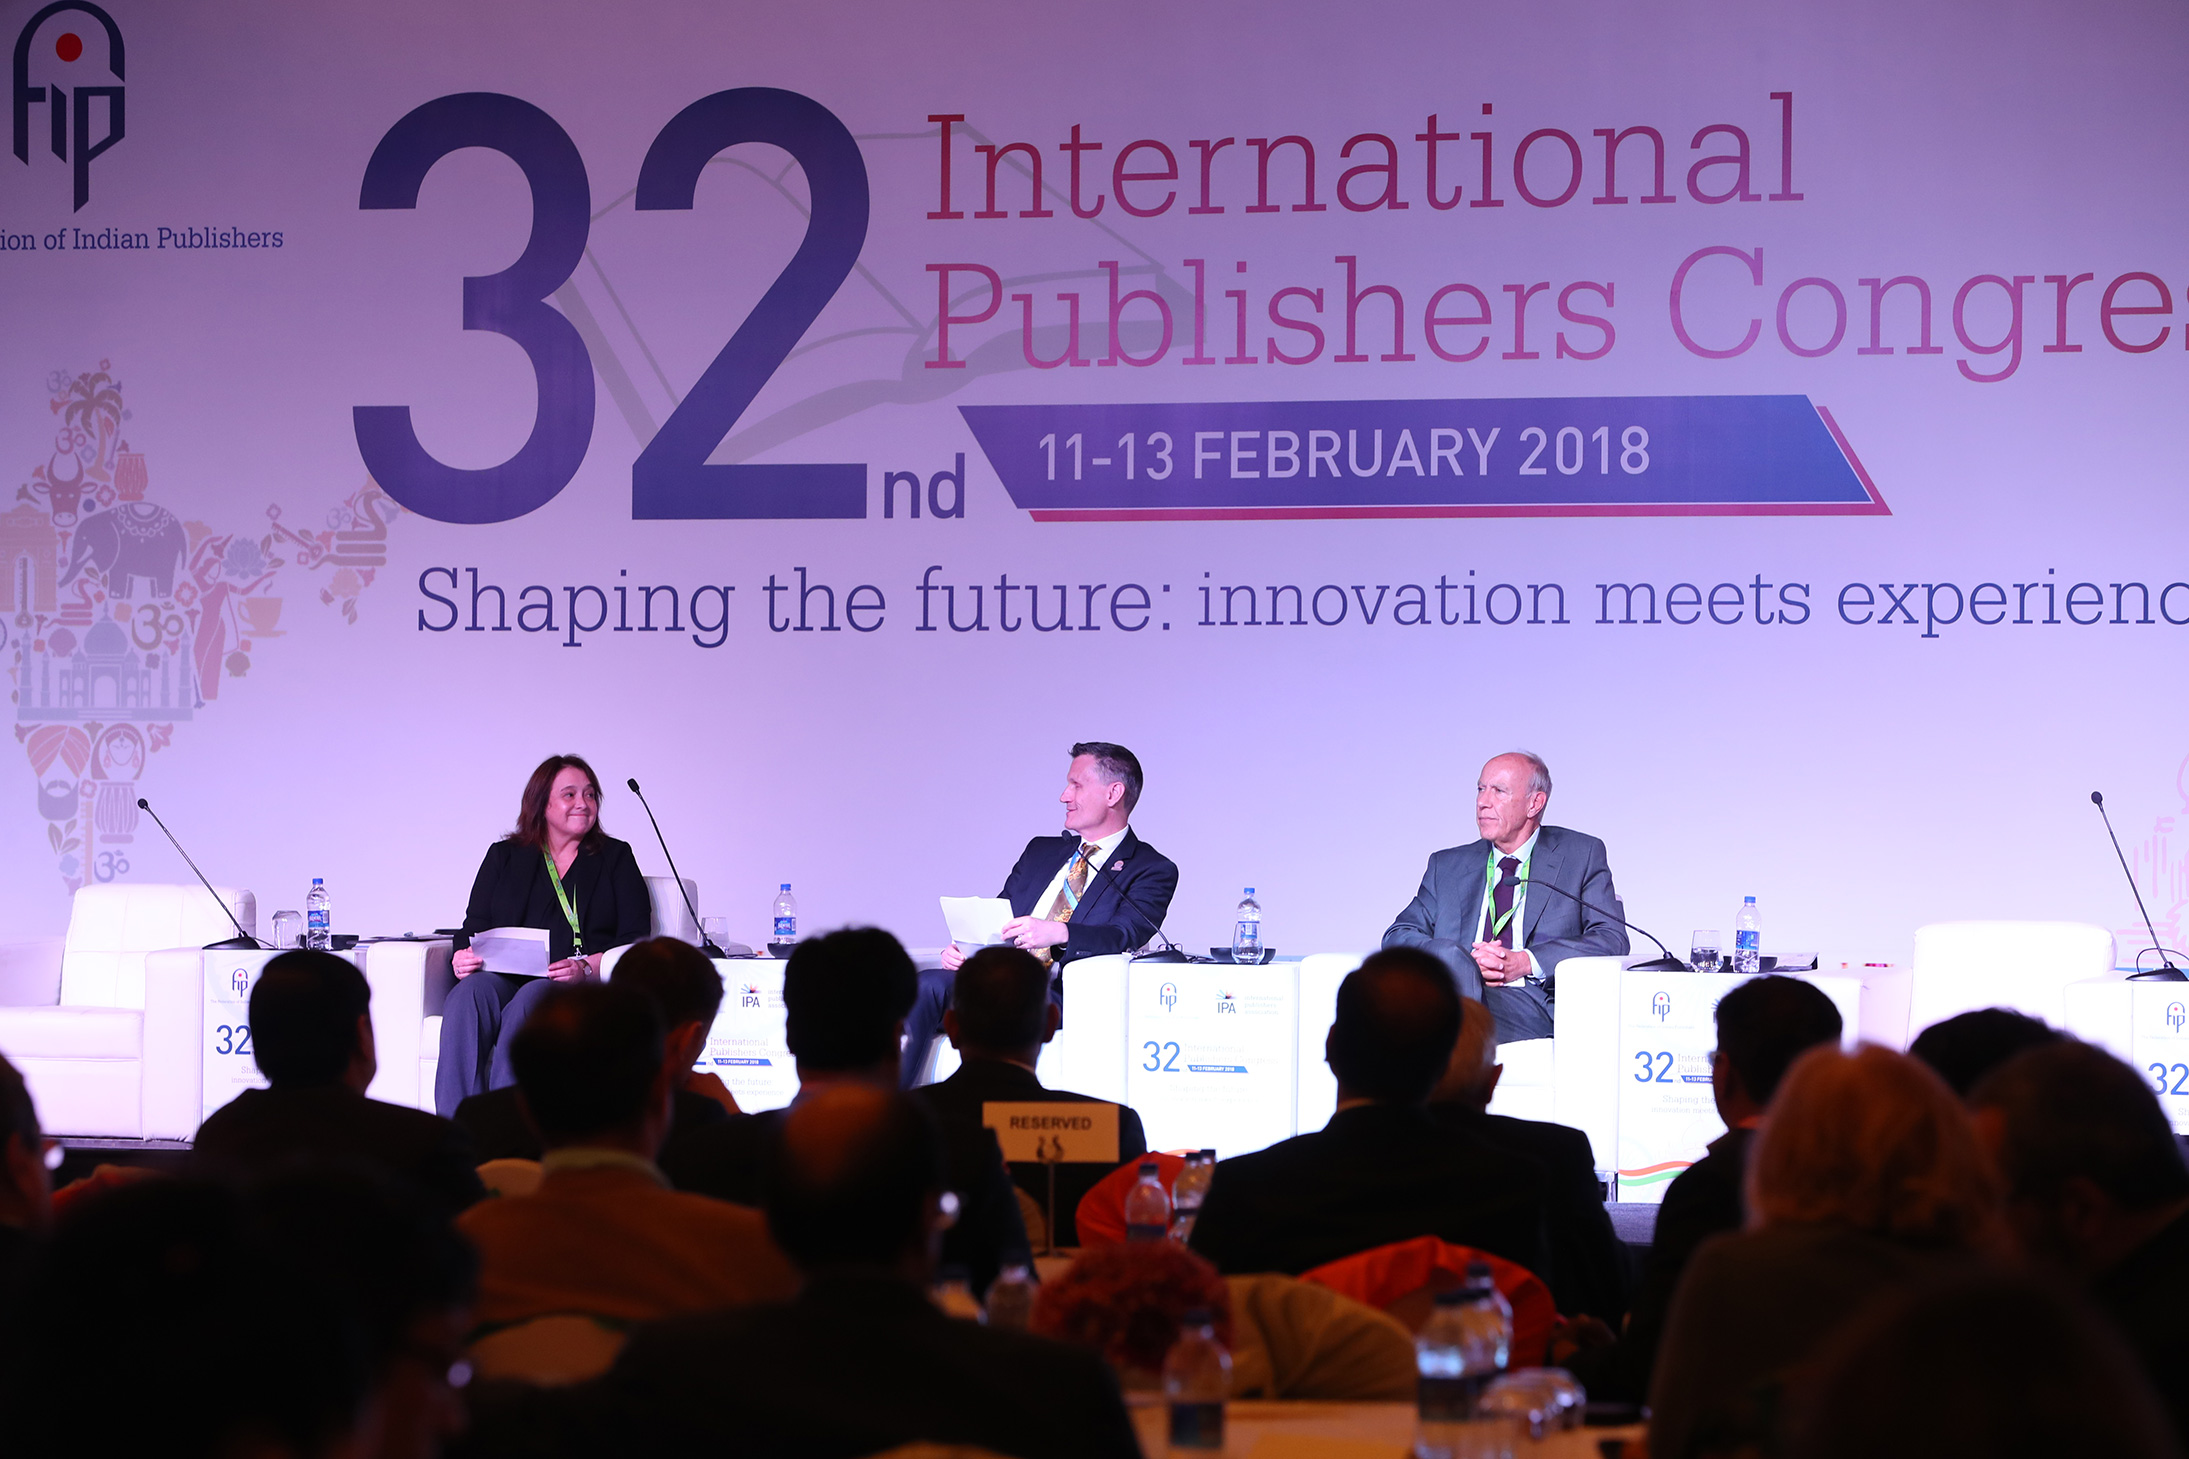 32nd International Publishers Congress New Delhi